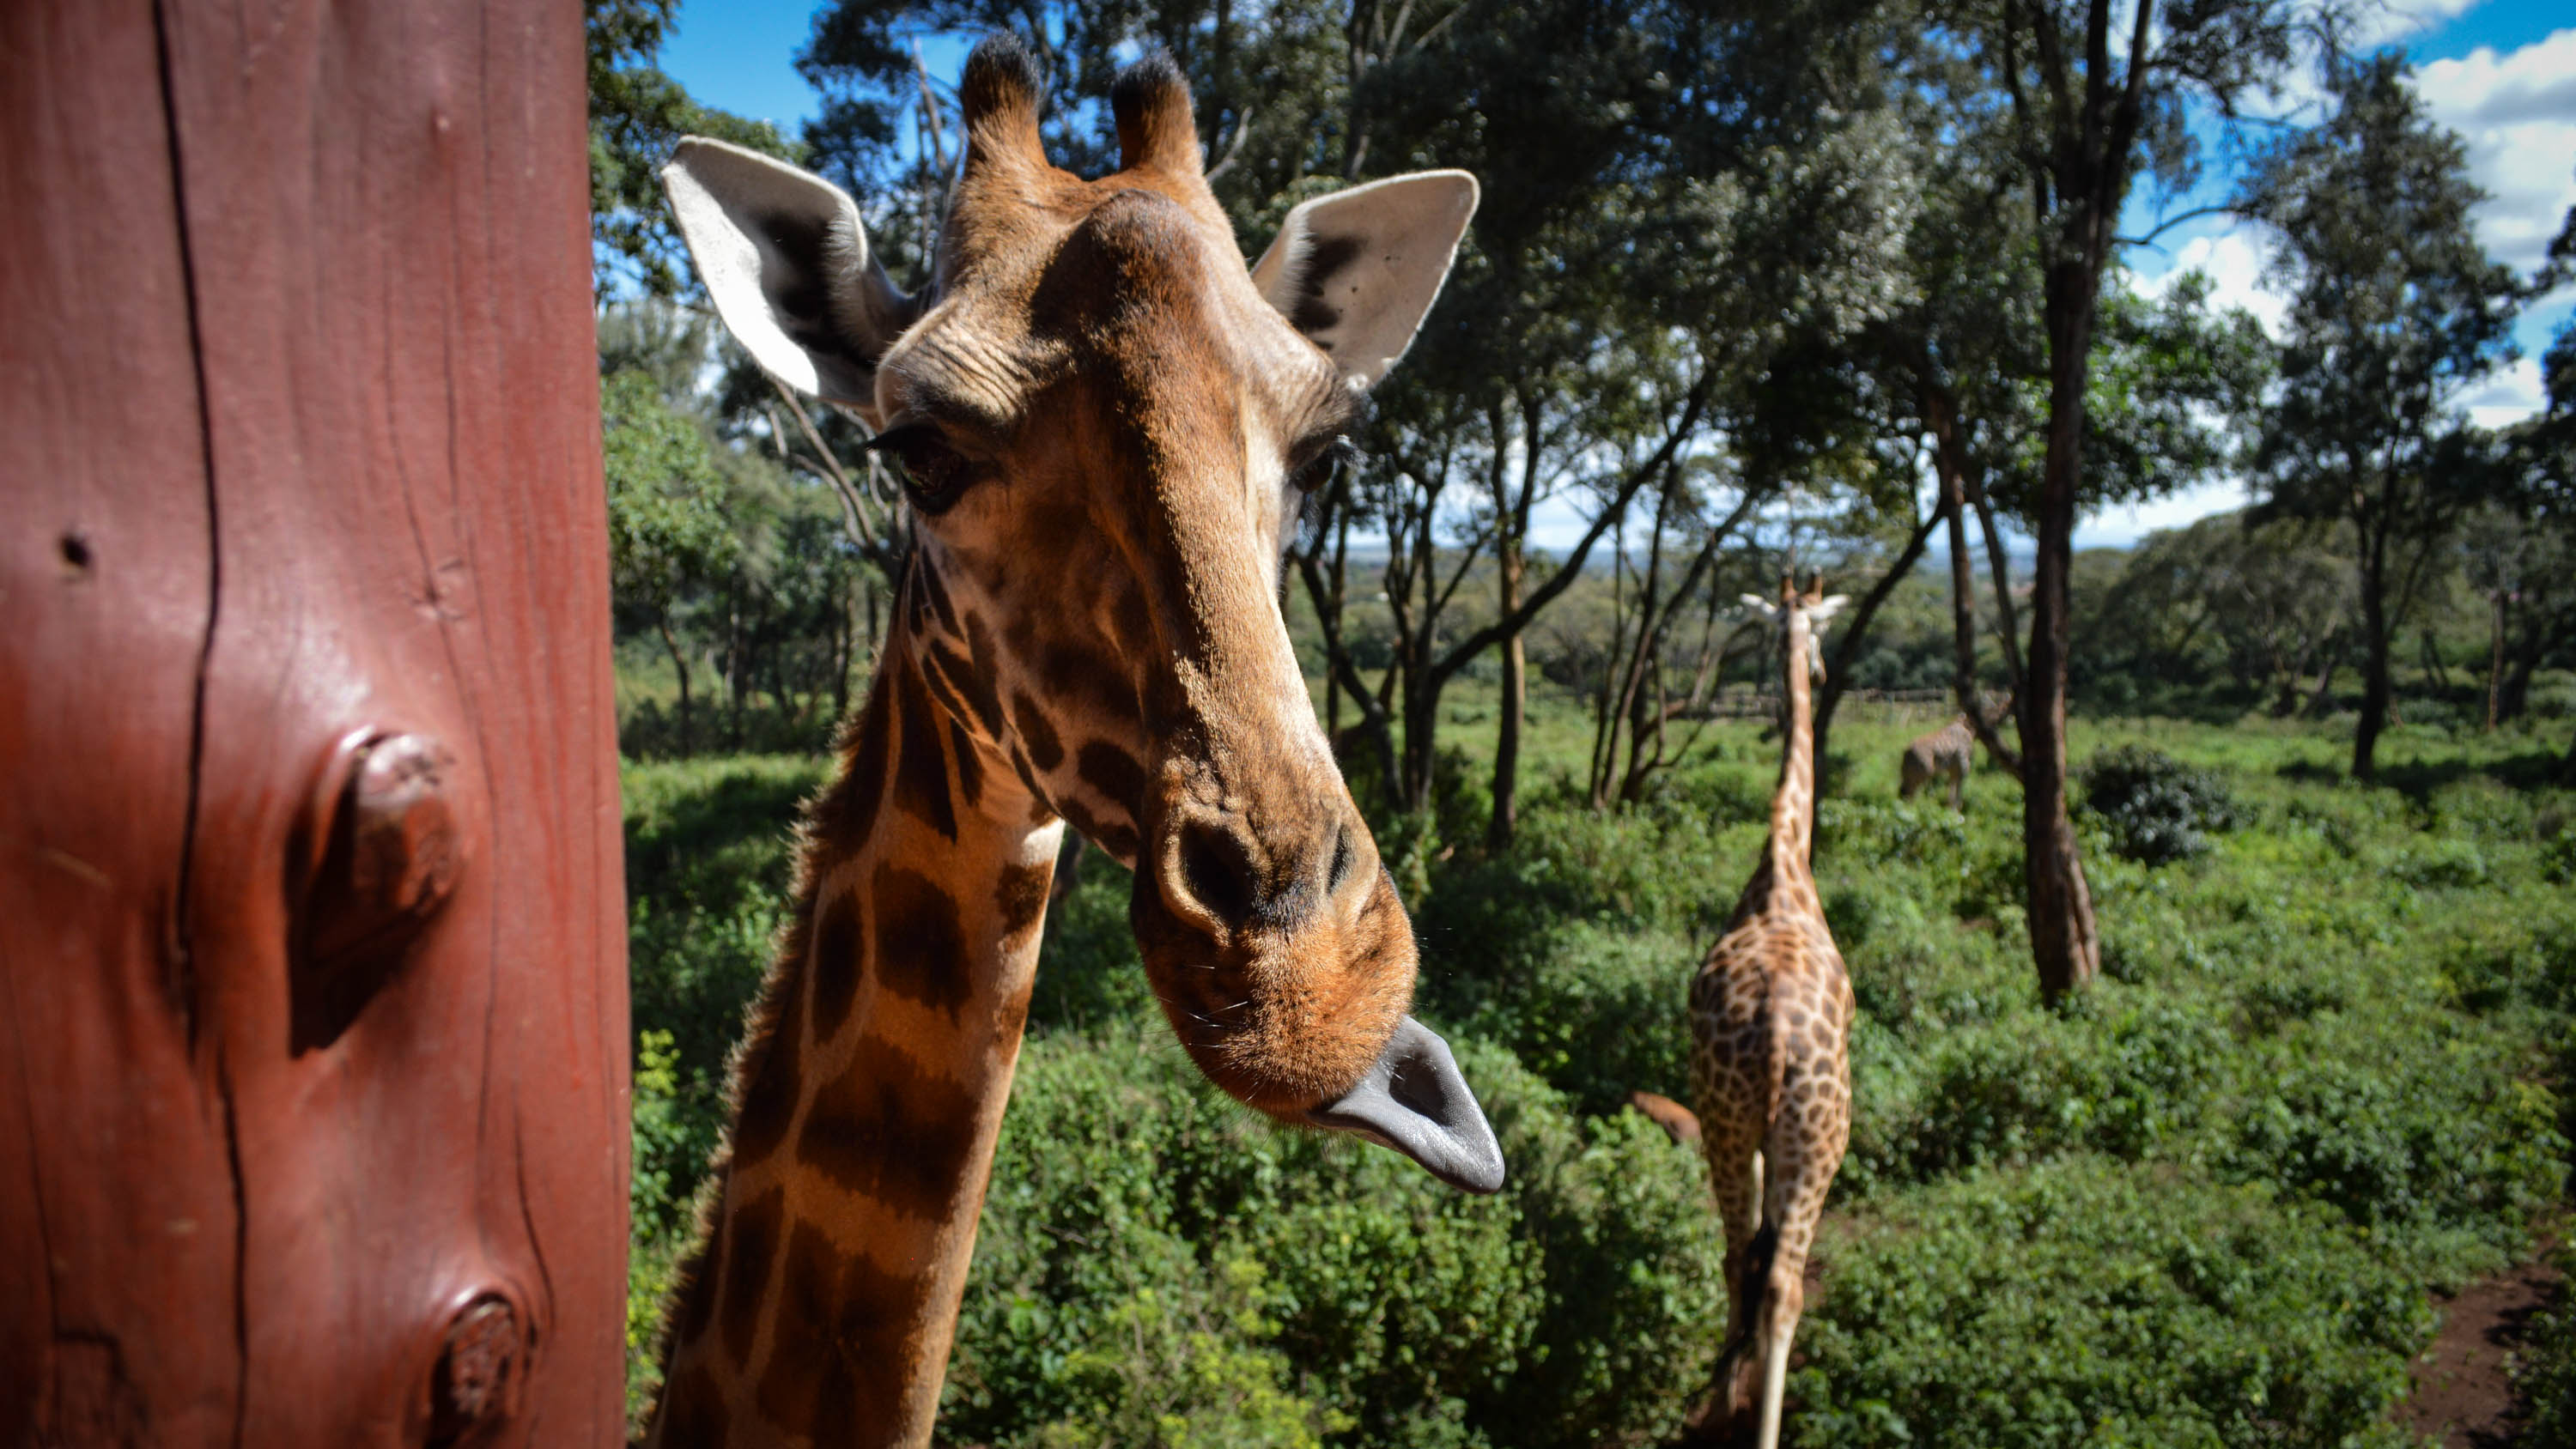 Best things to do in Kenya: 20 terrific ideas for your trip | CNN Travel